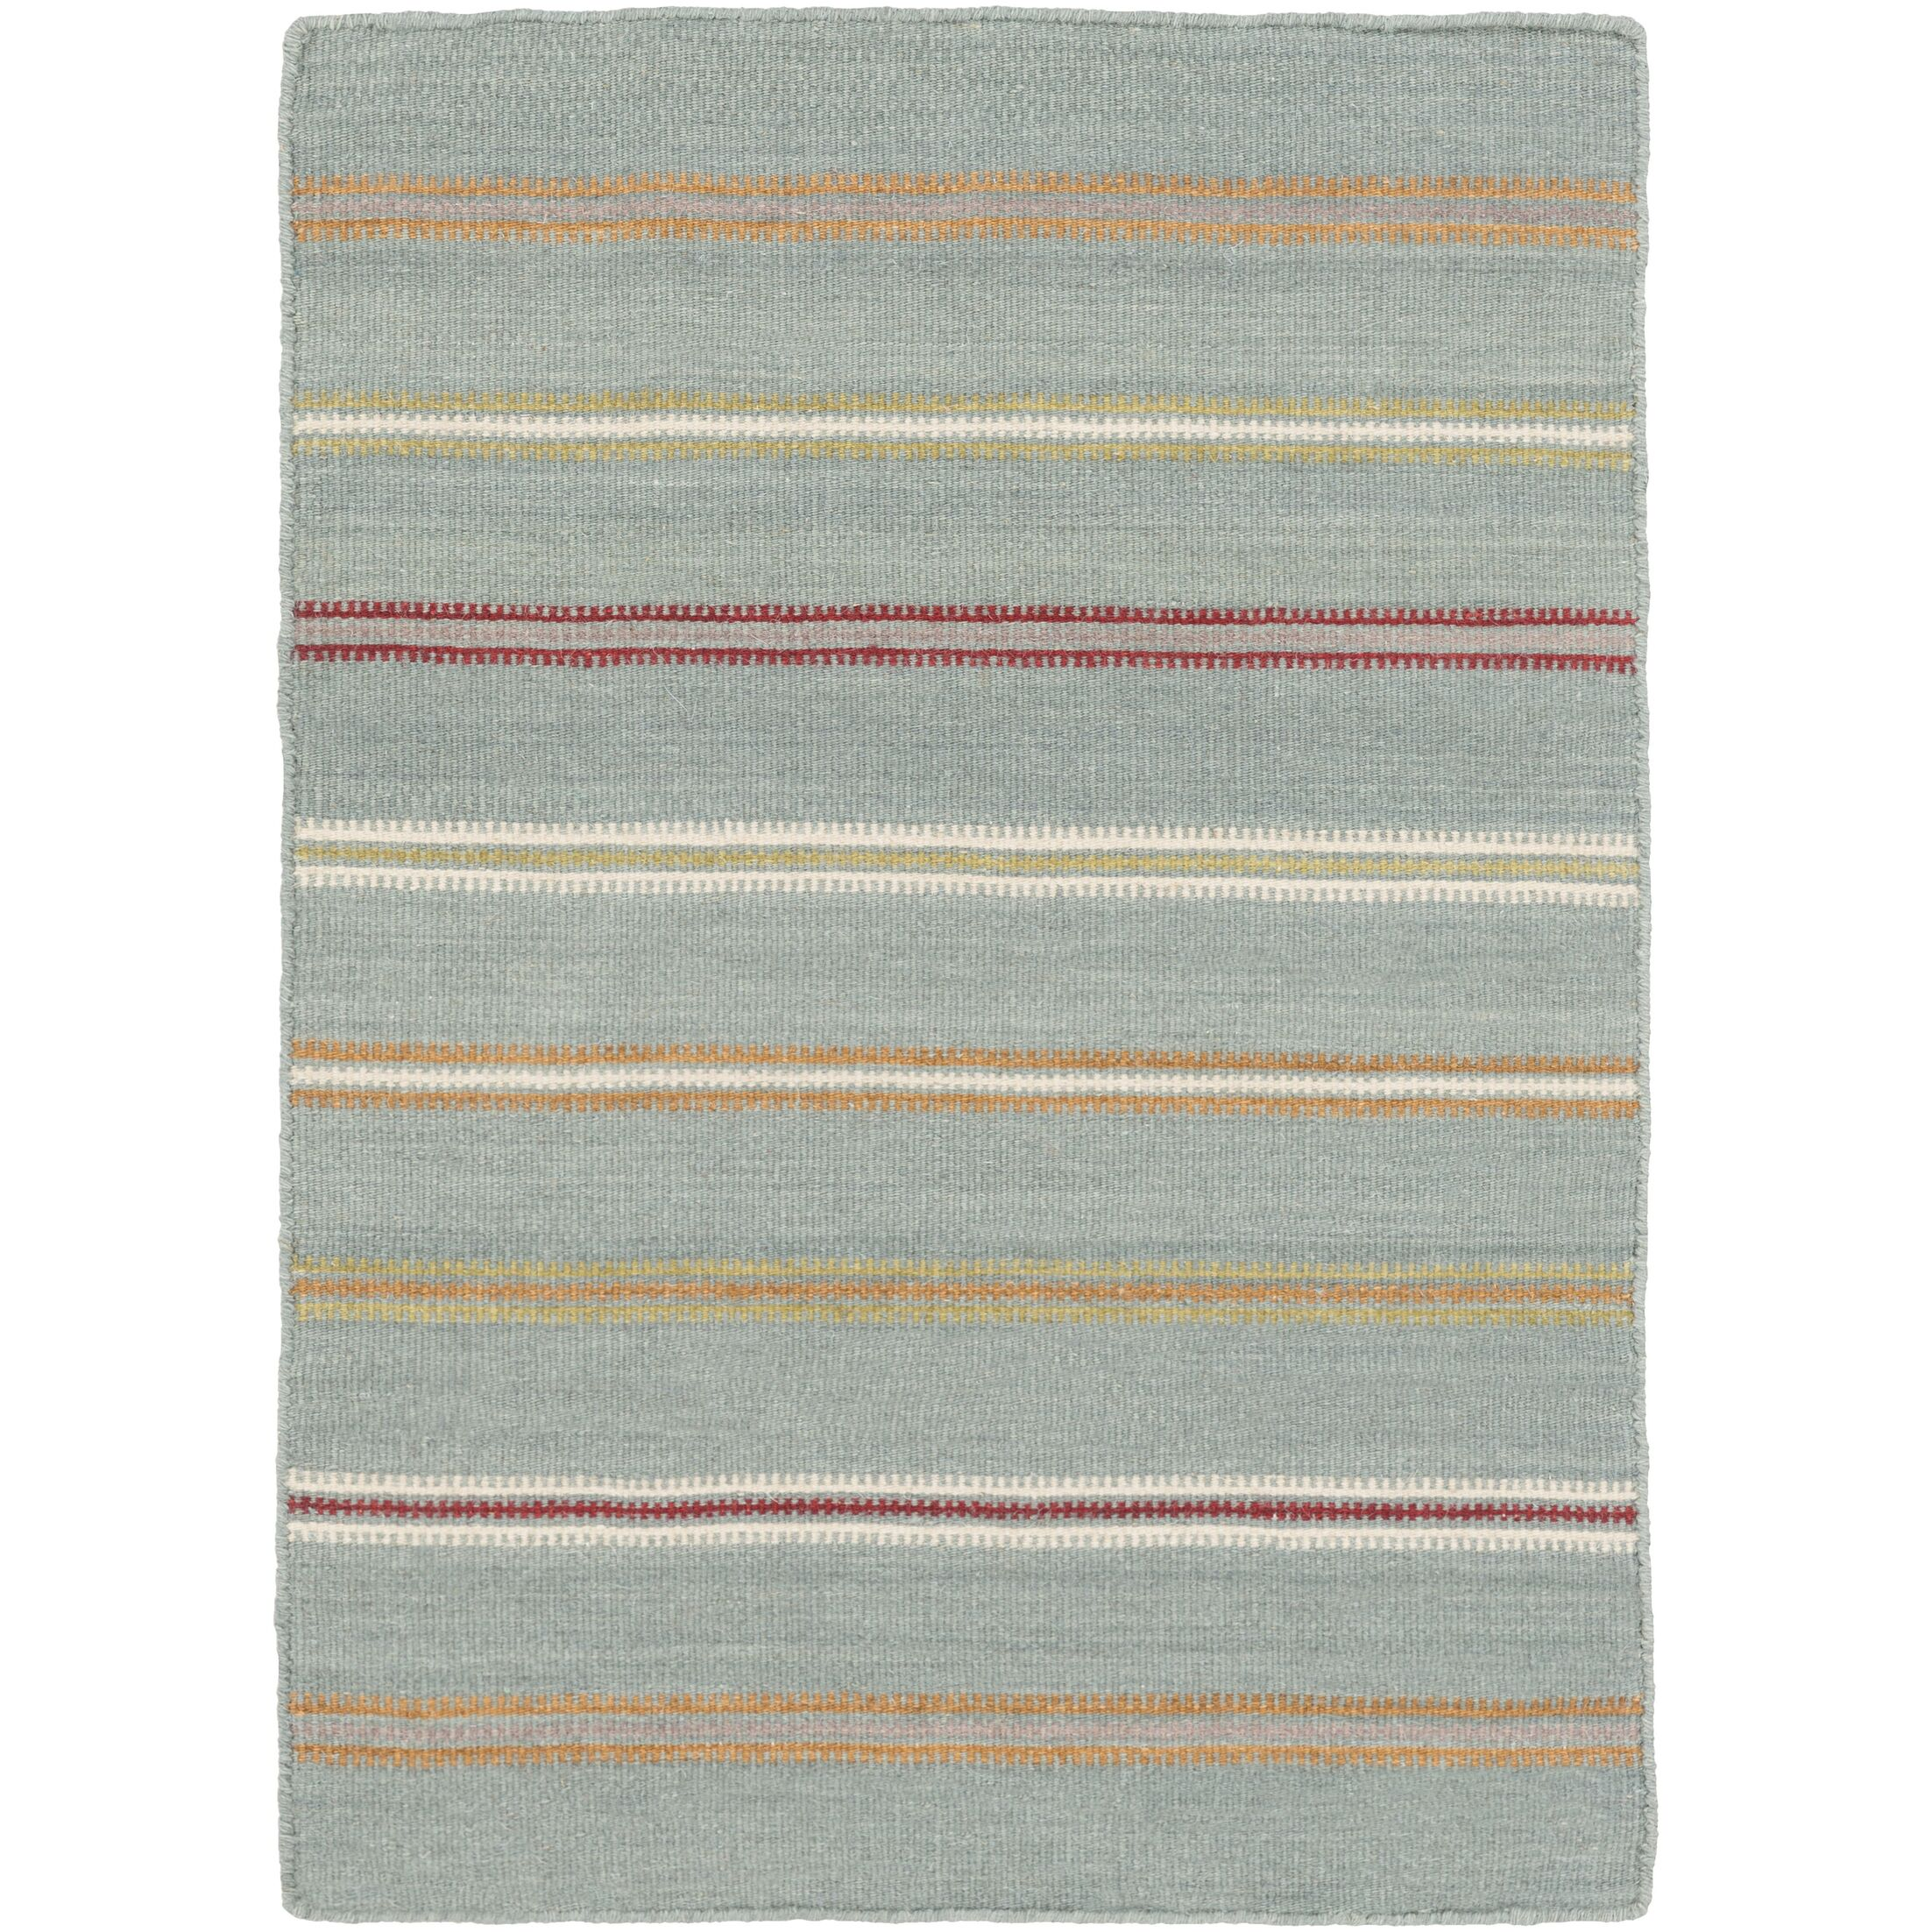 Rachel Hand Woven Gray Area Rug Rug Size: Rectangle 6' x 9'